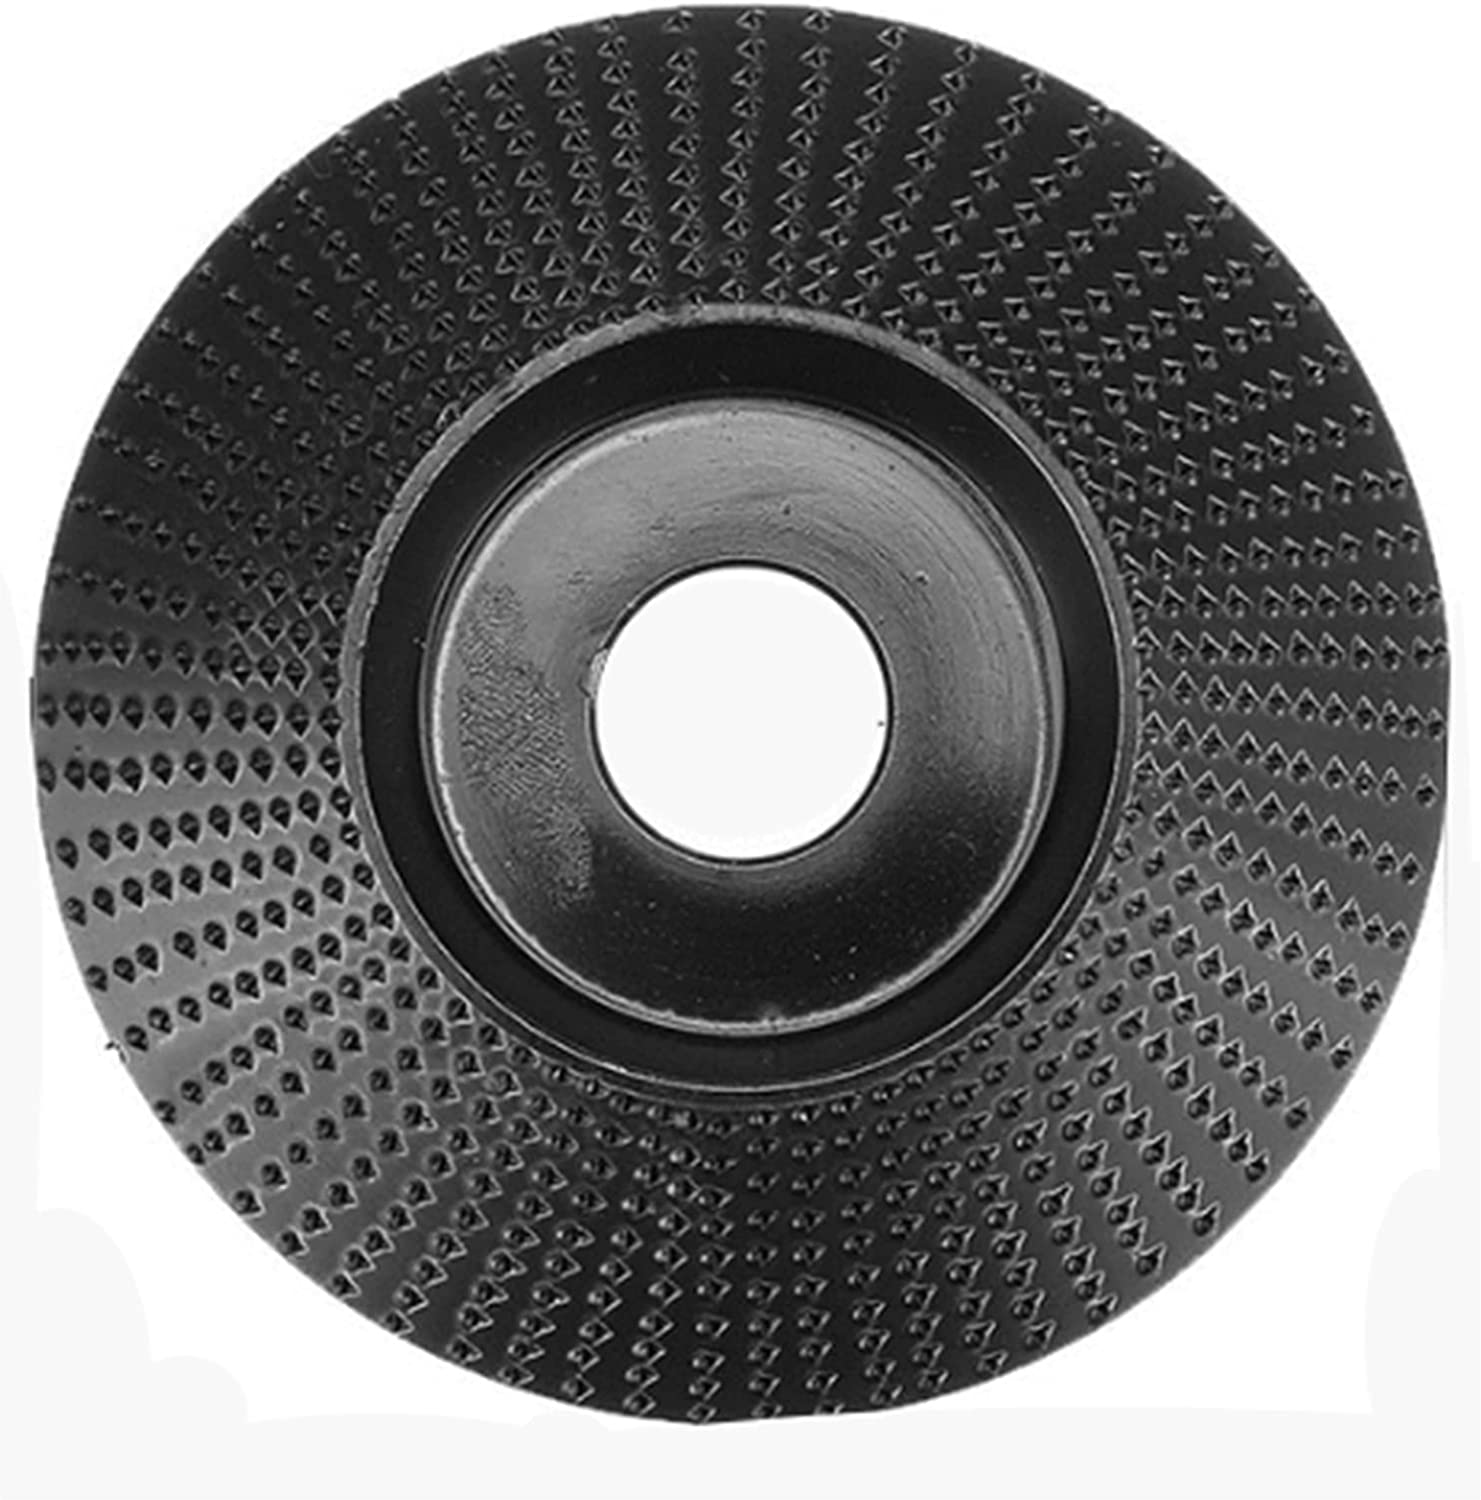 DONGXIAN Fit For 4.25in Tungsten Shaping Carbide OFFicial Wood Disc Same day shipping Carvi